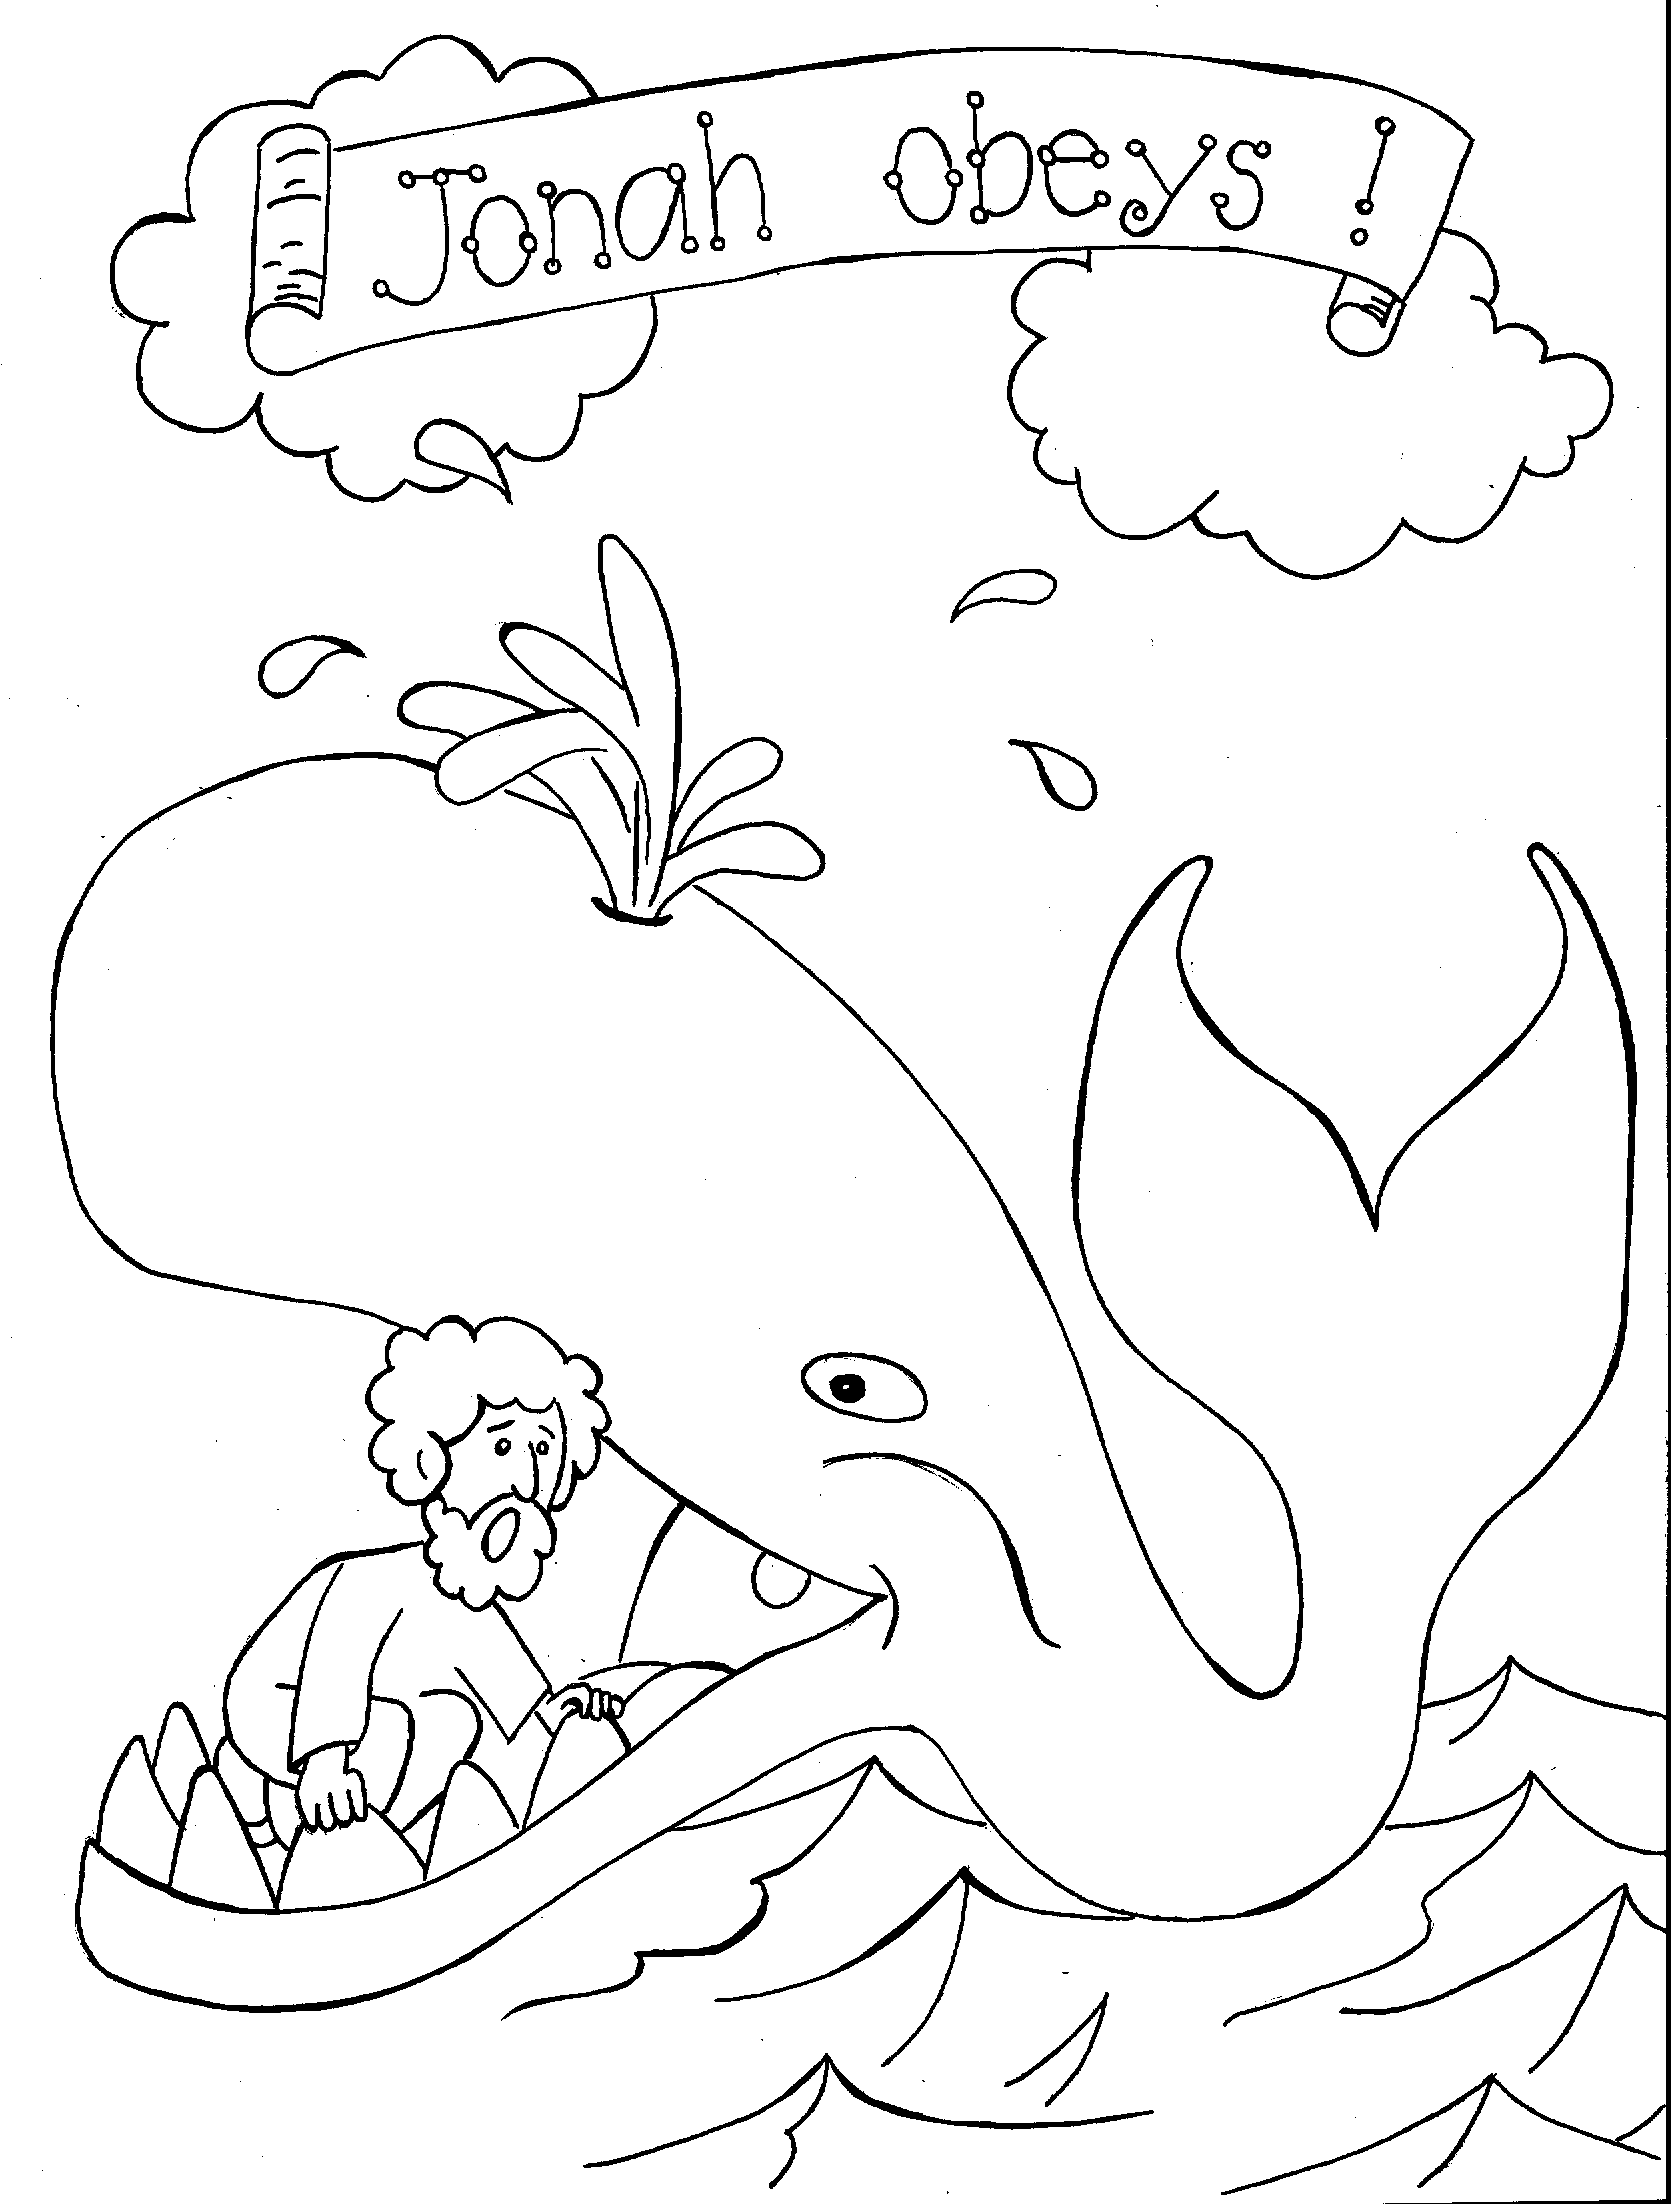 jonah-and-the-whale-coloring-page-3 | Craft Ideas | Sunday school ...